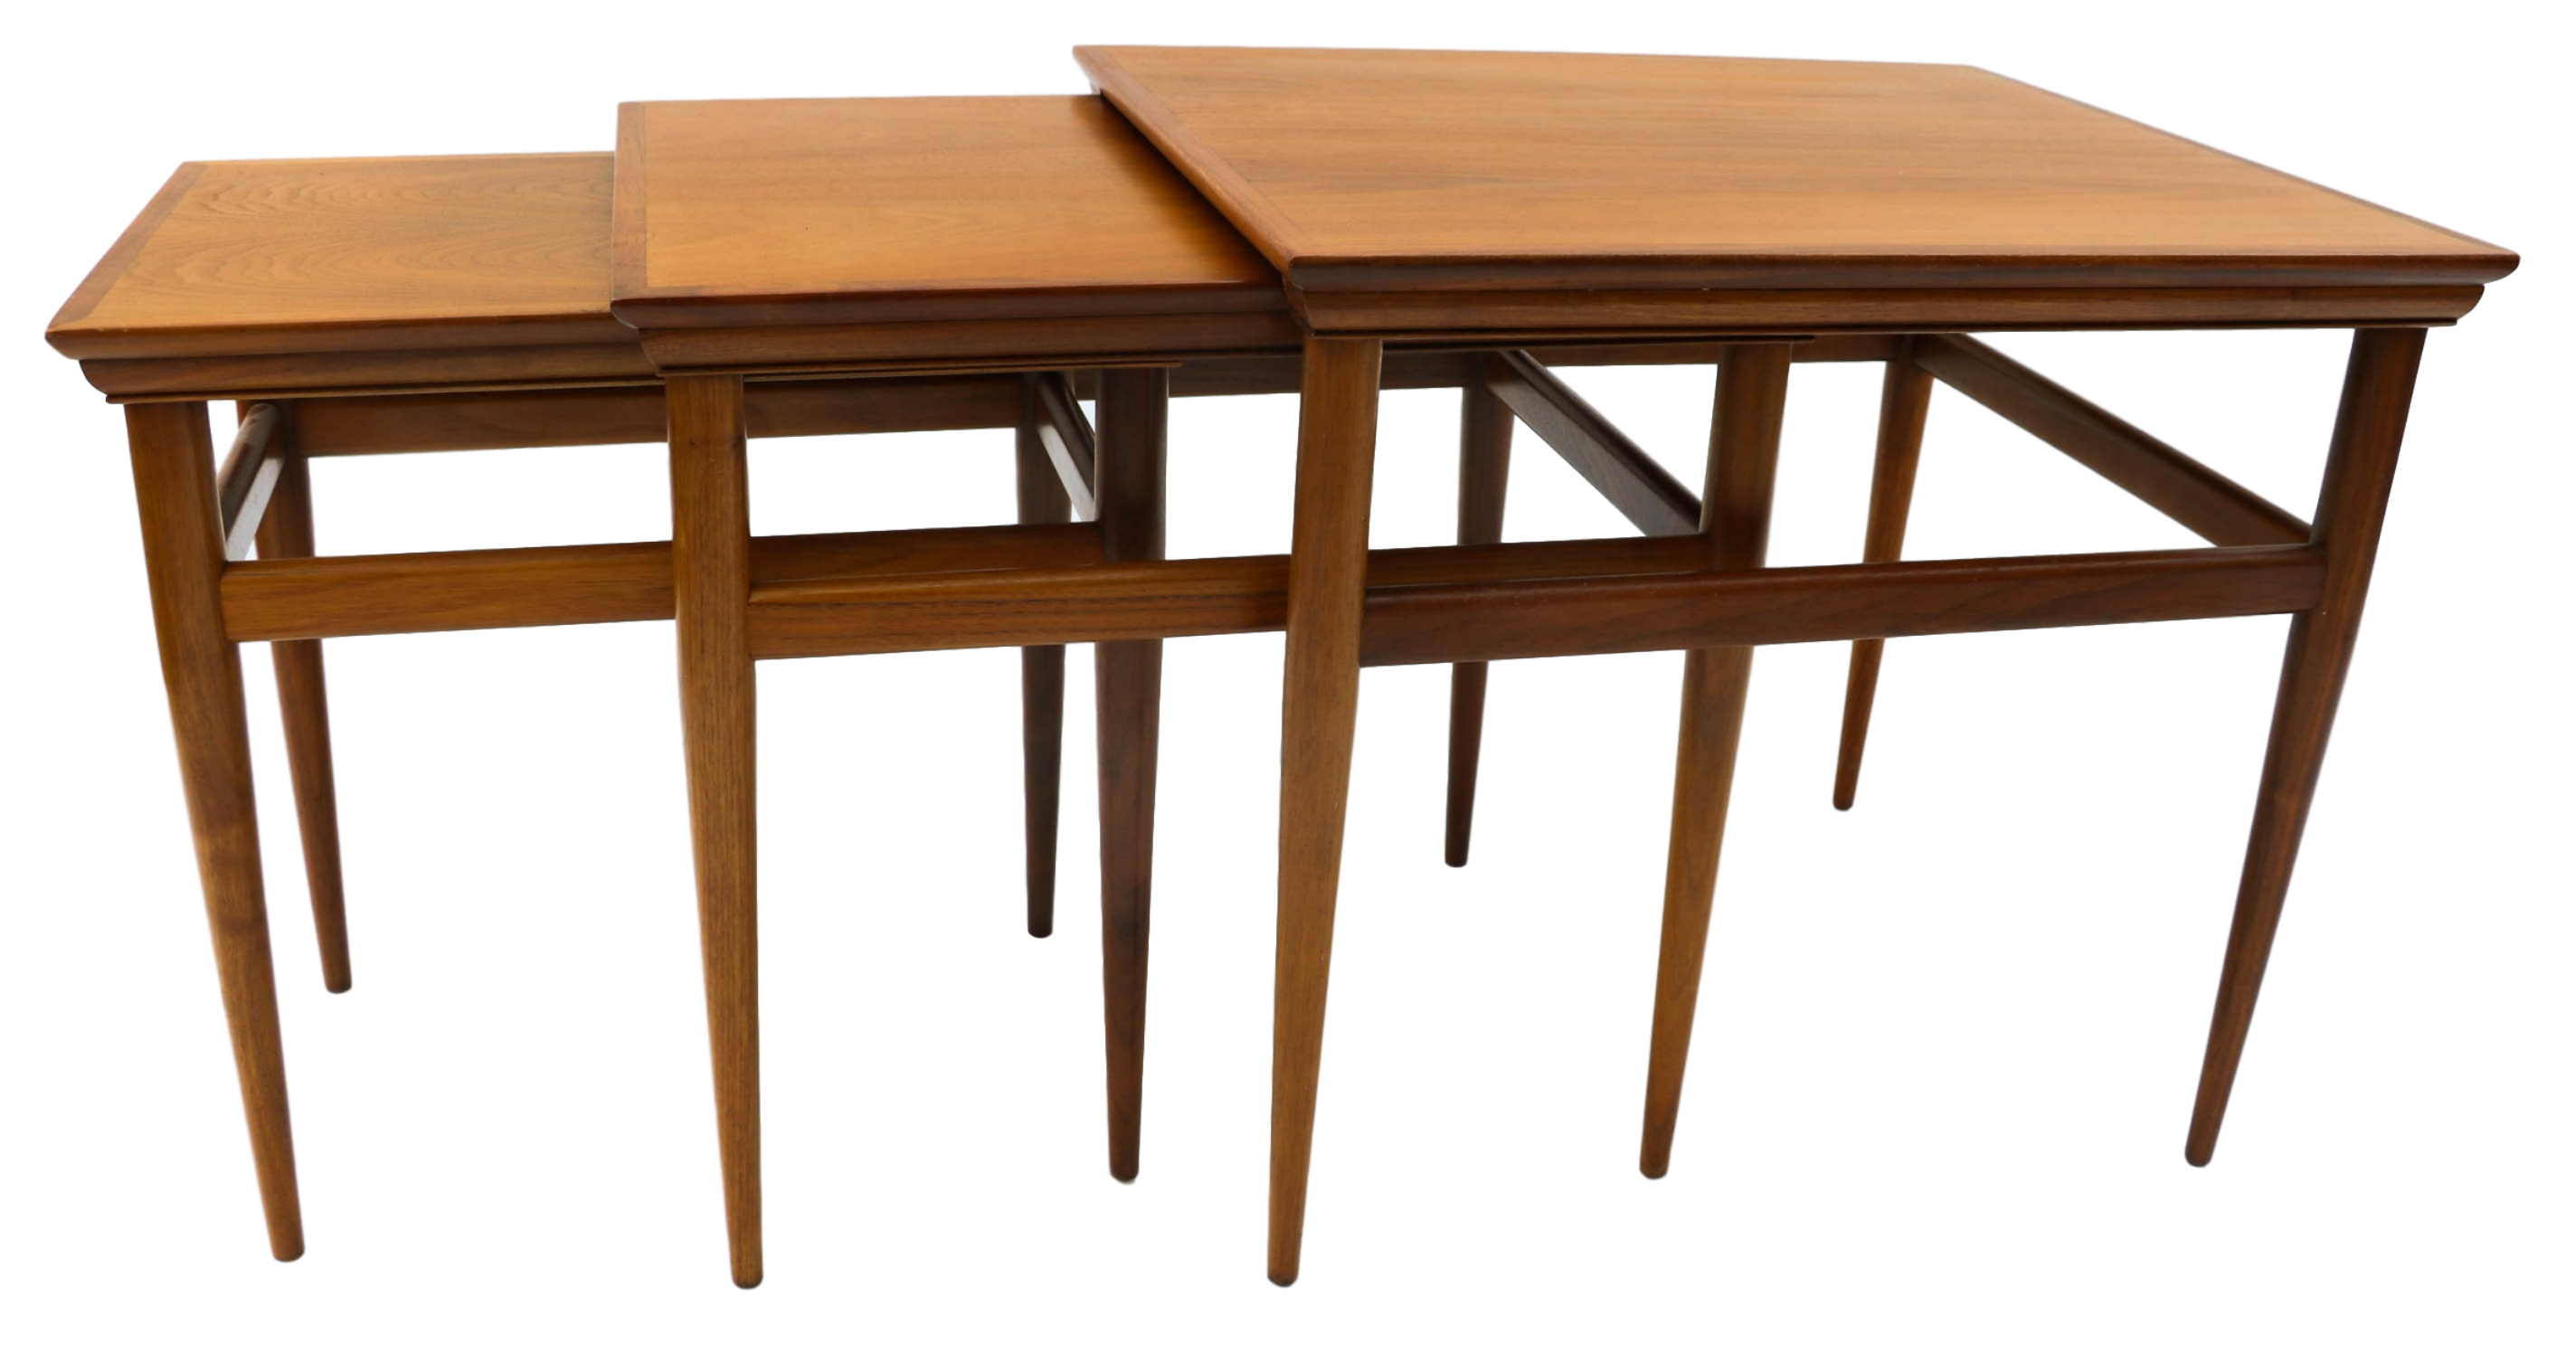 Wonderful Mid Century Modern Nesting Tables By Heritage   3   Image 7 Of 10